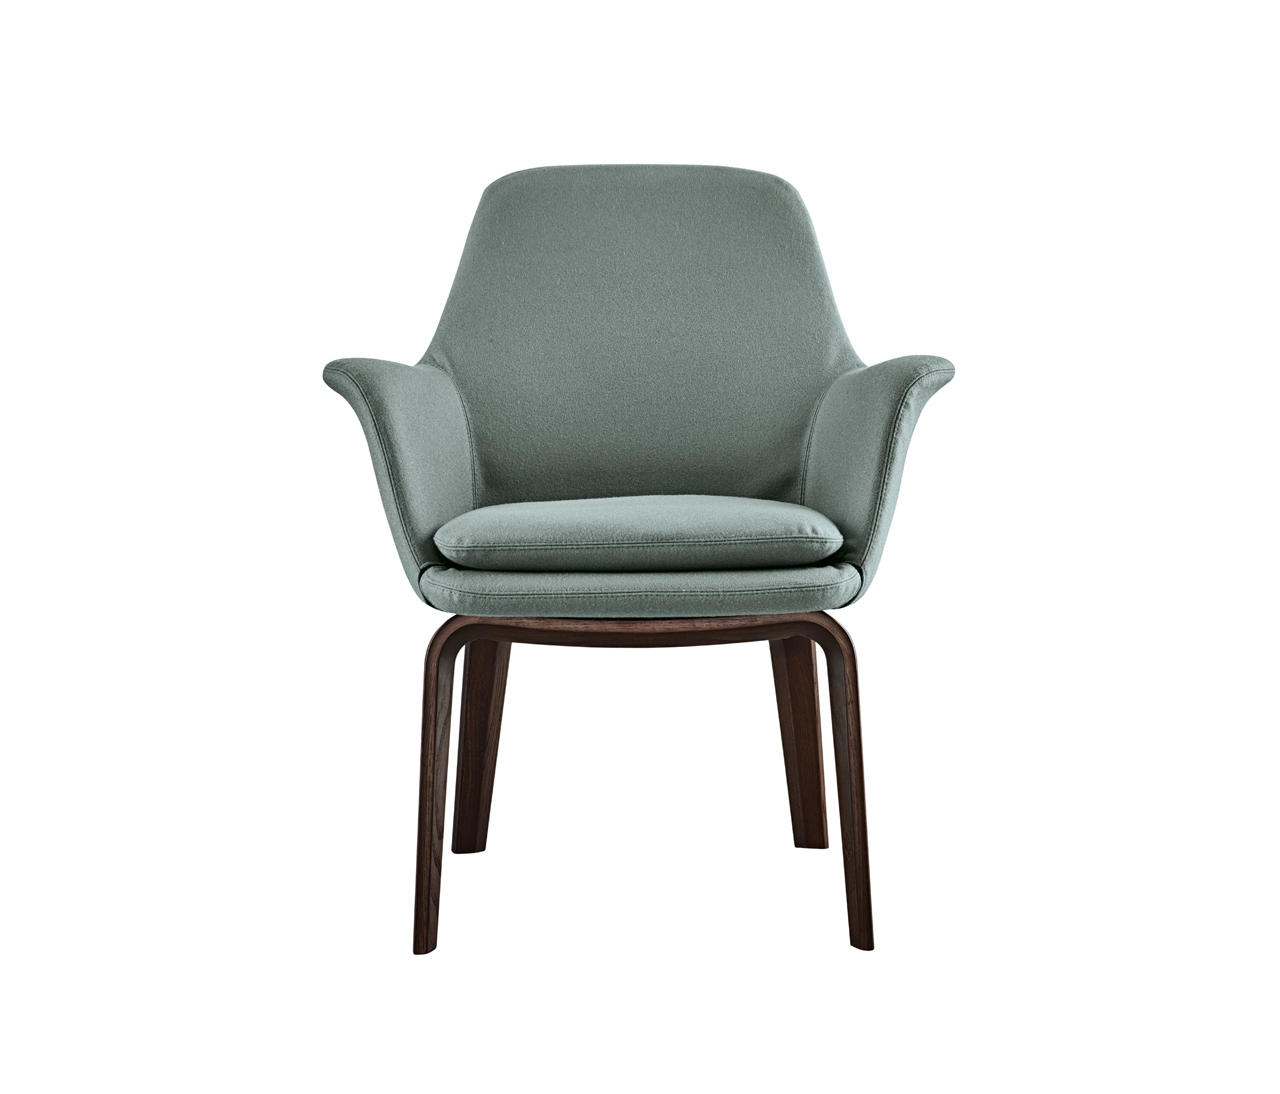 York Quot Lounge Quot Chairs From Minotti Architonic